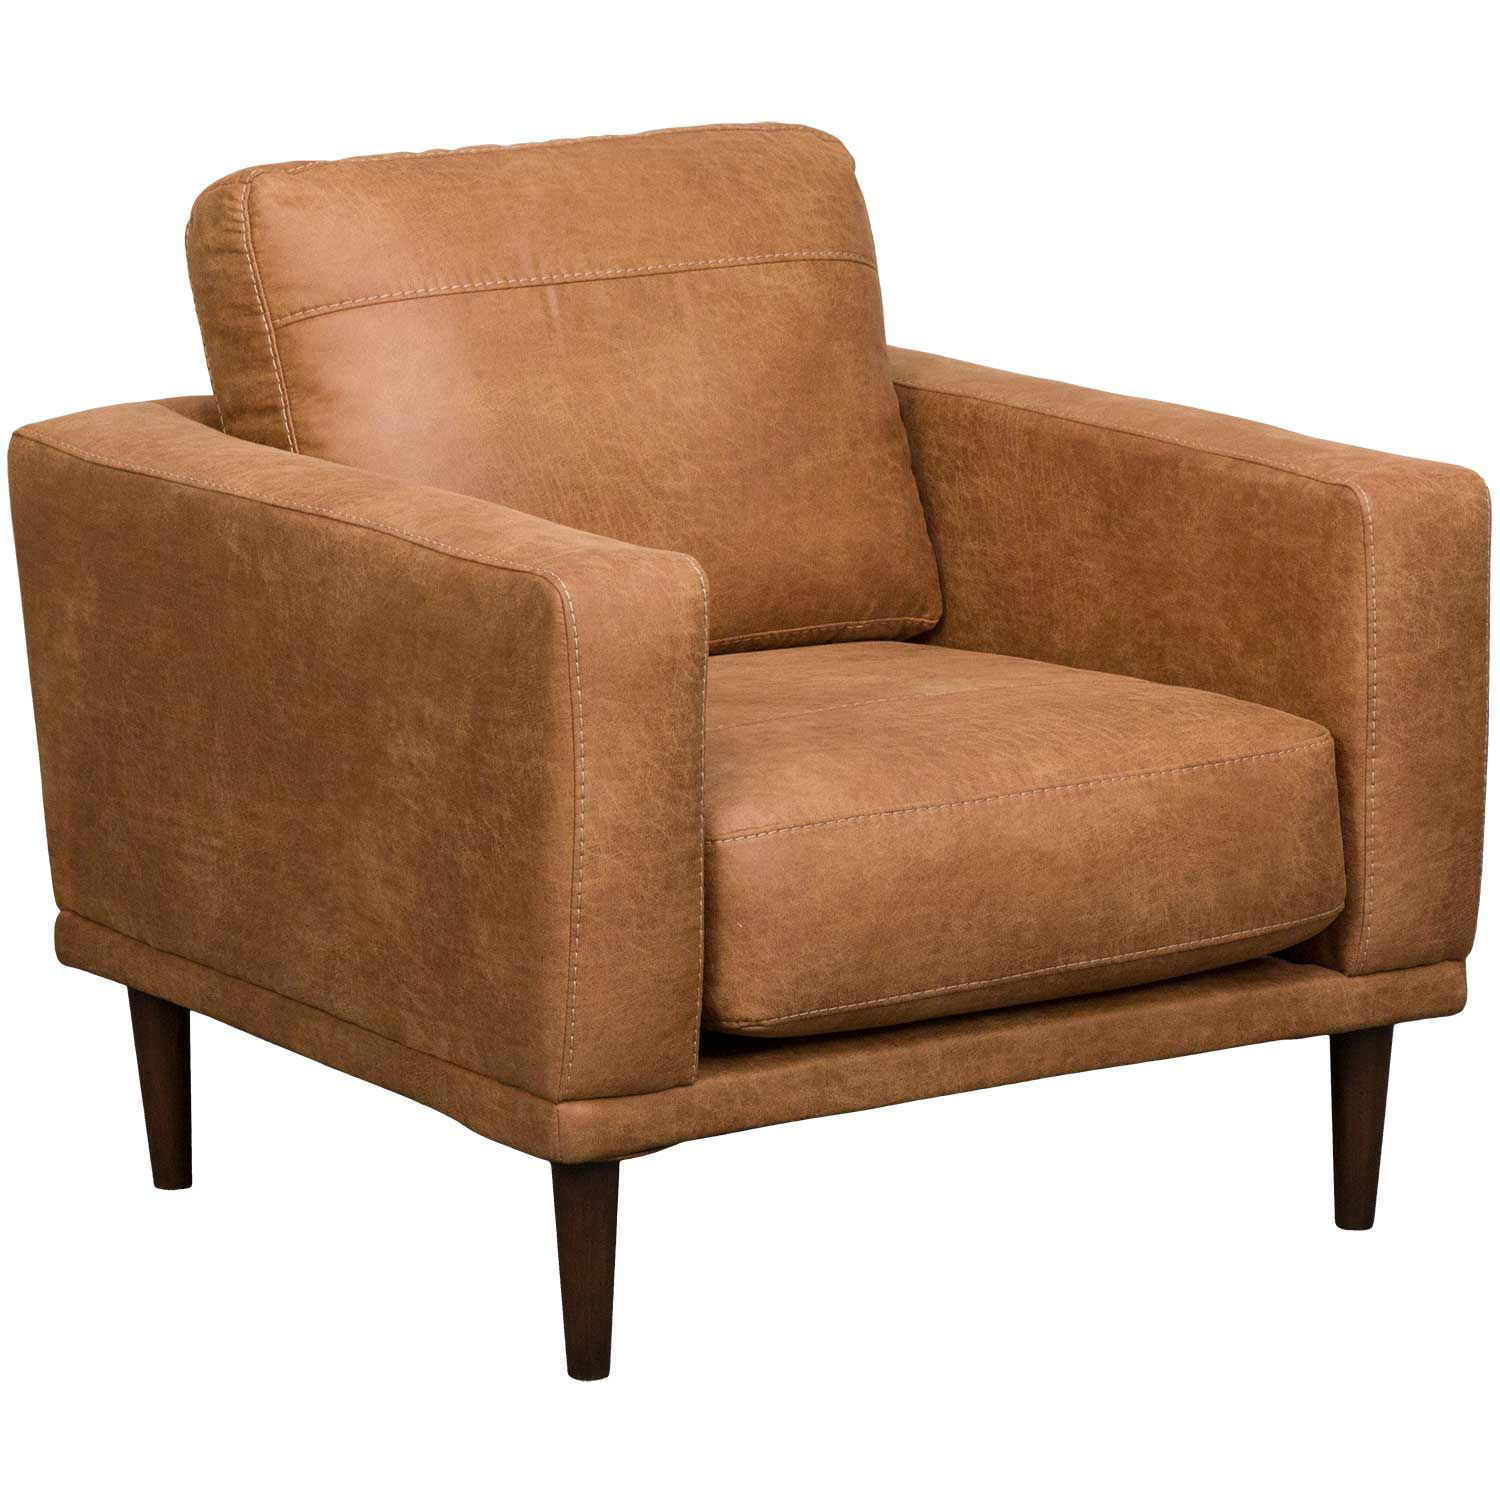 Picture of Arroyo Chair